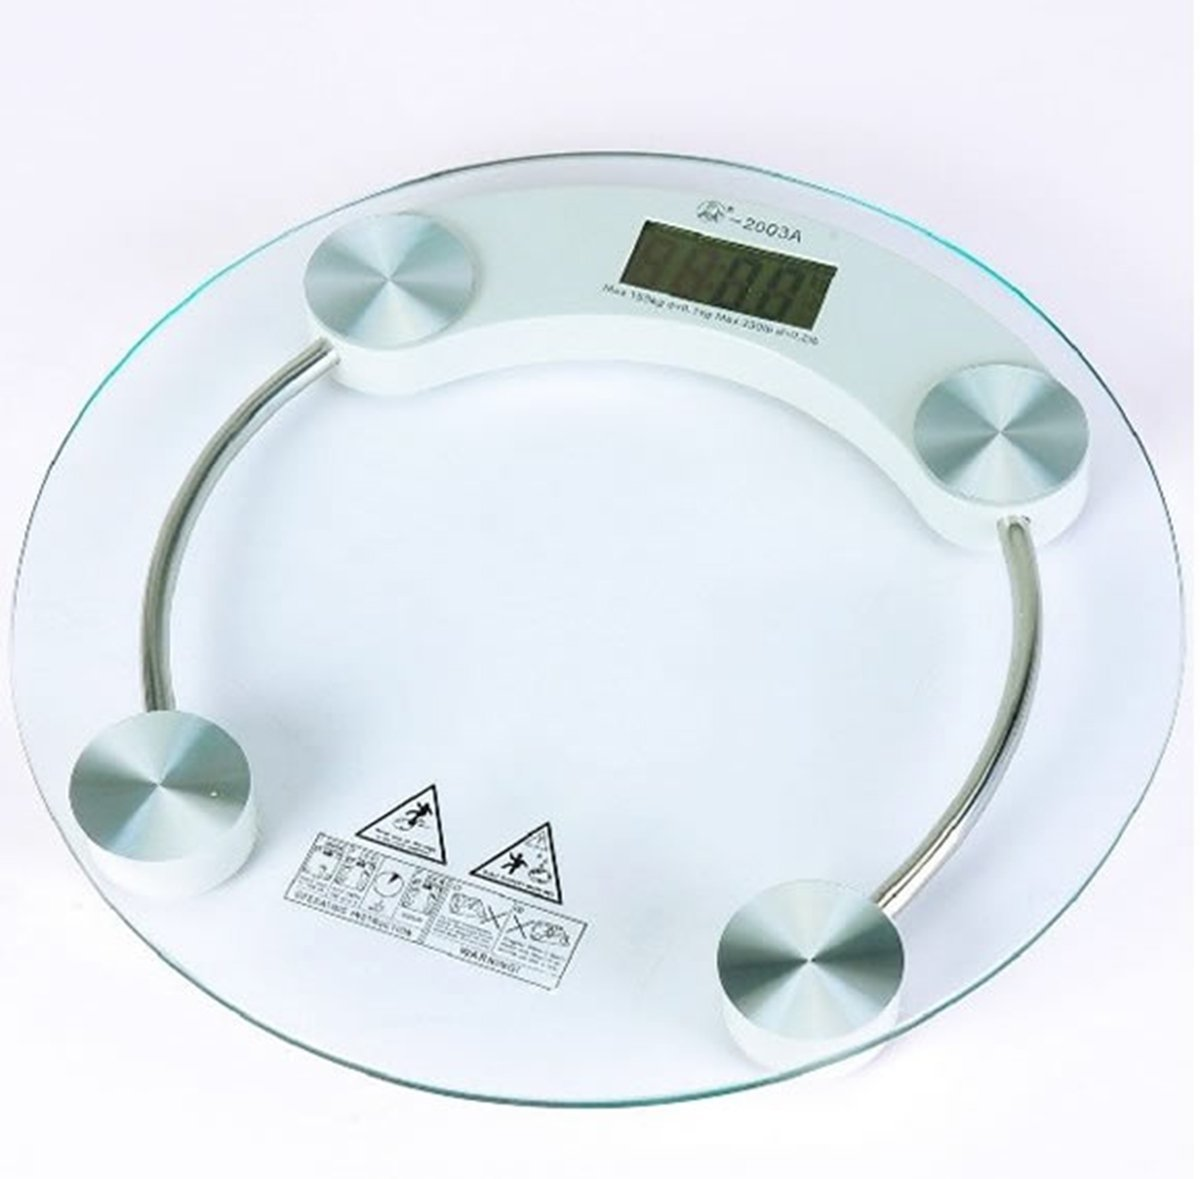 venus thick tempered glass body round digital weighing scale